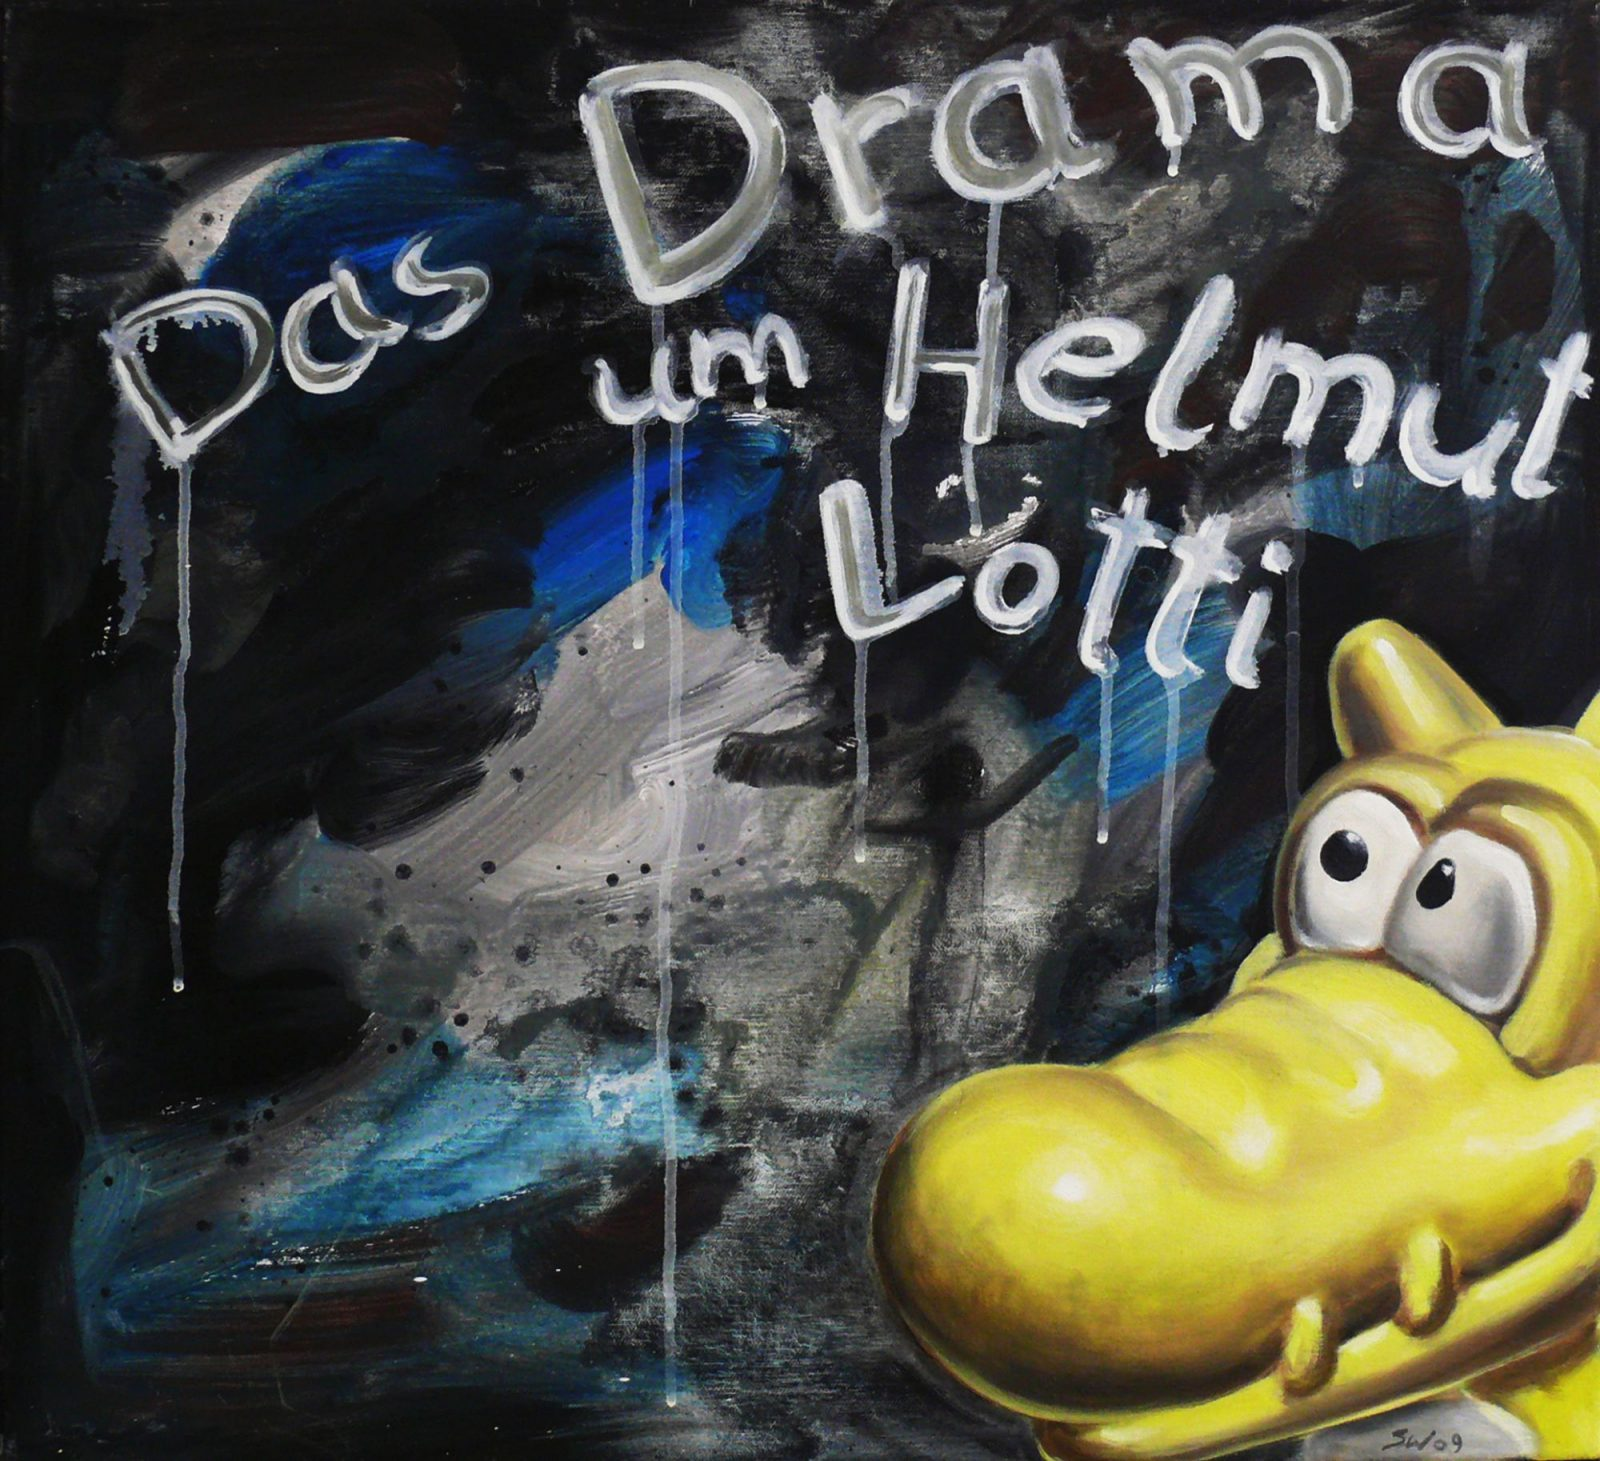 Sebastian Weissenbacher: The Drama of Helmut Lotti